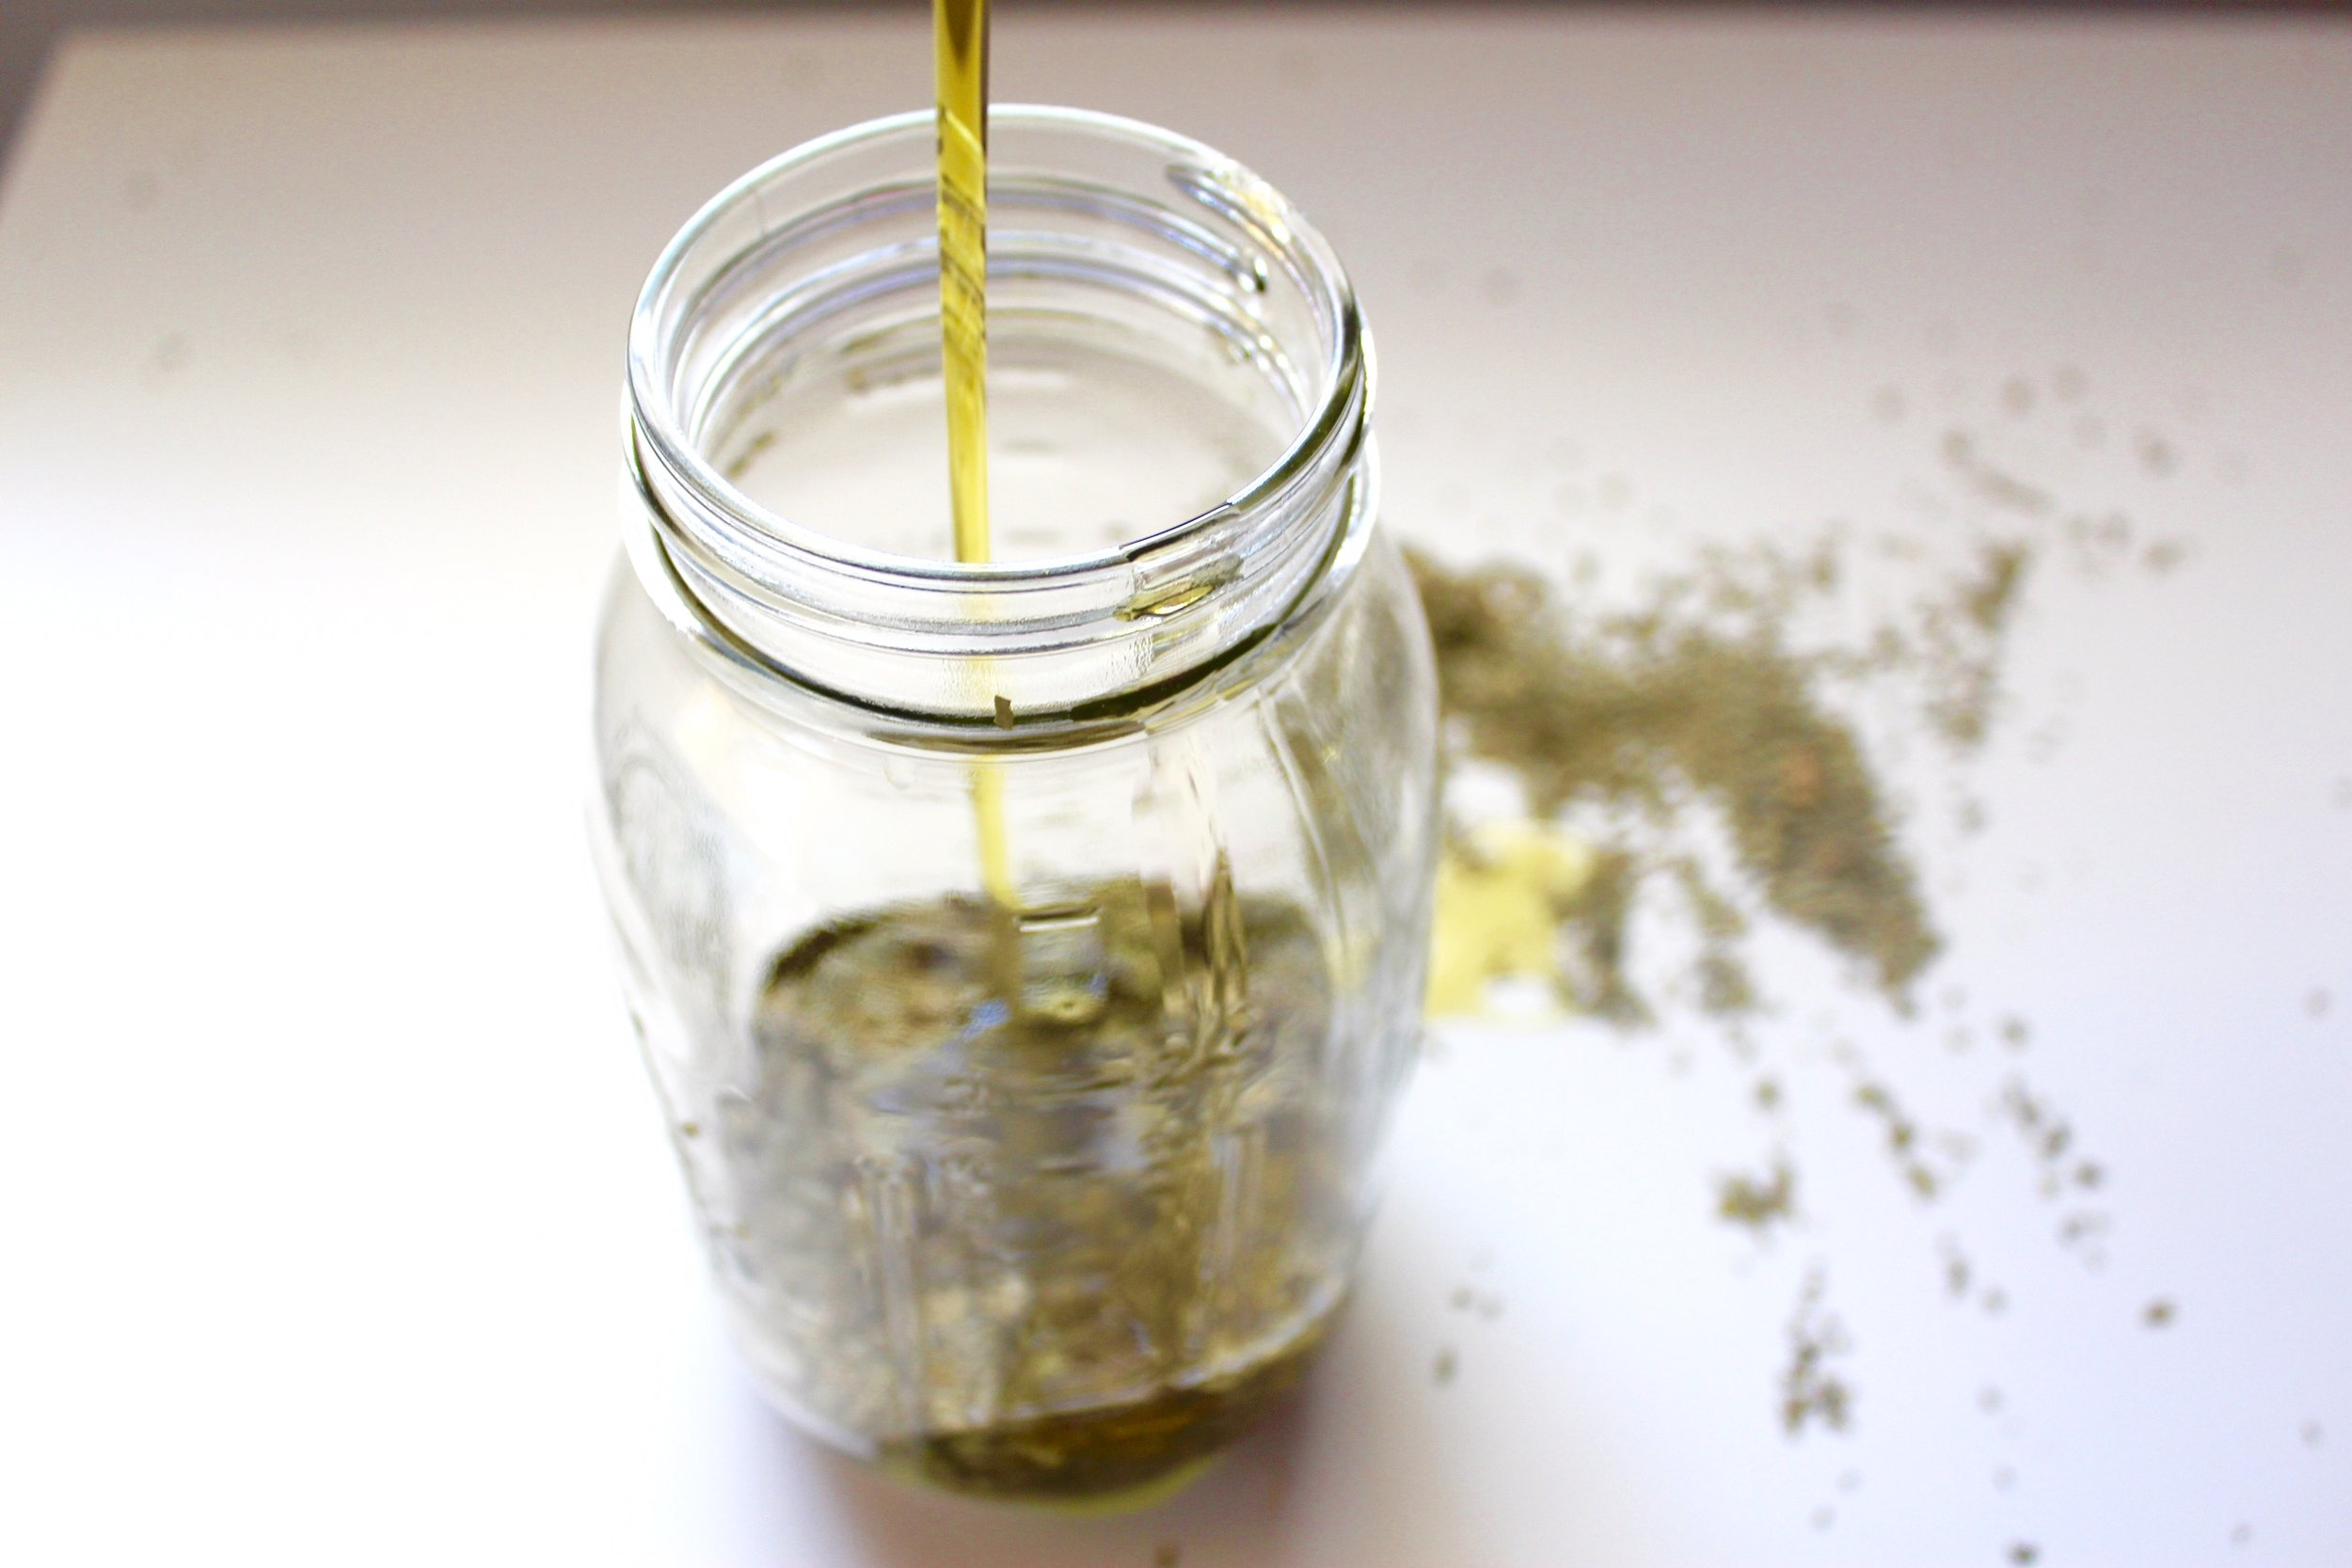 Olive oil induced with Neem leaves